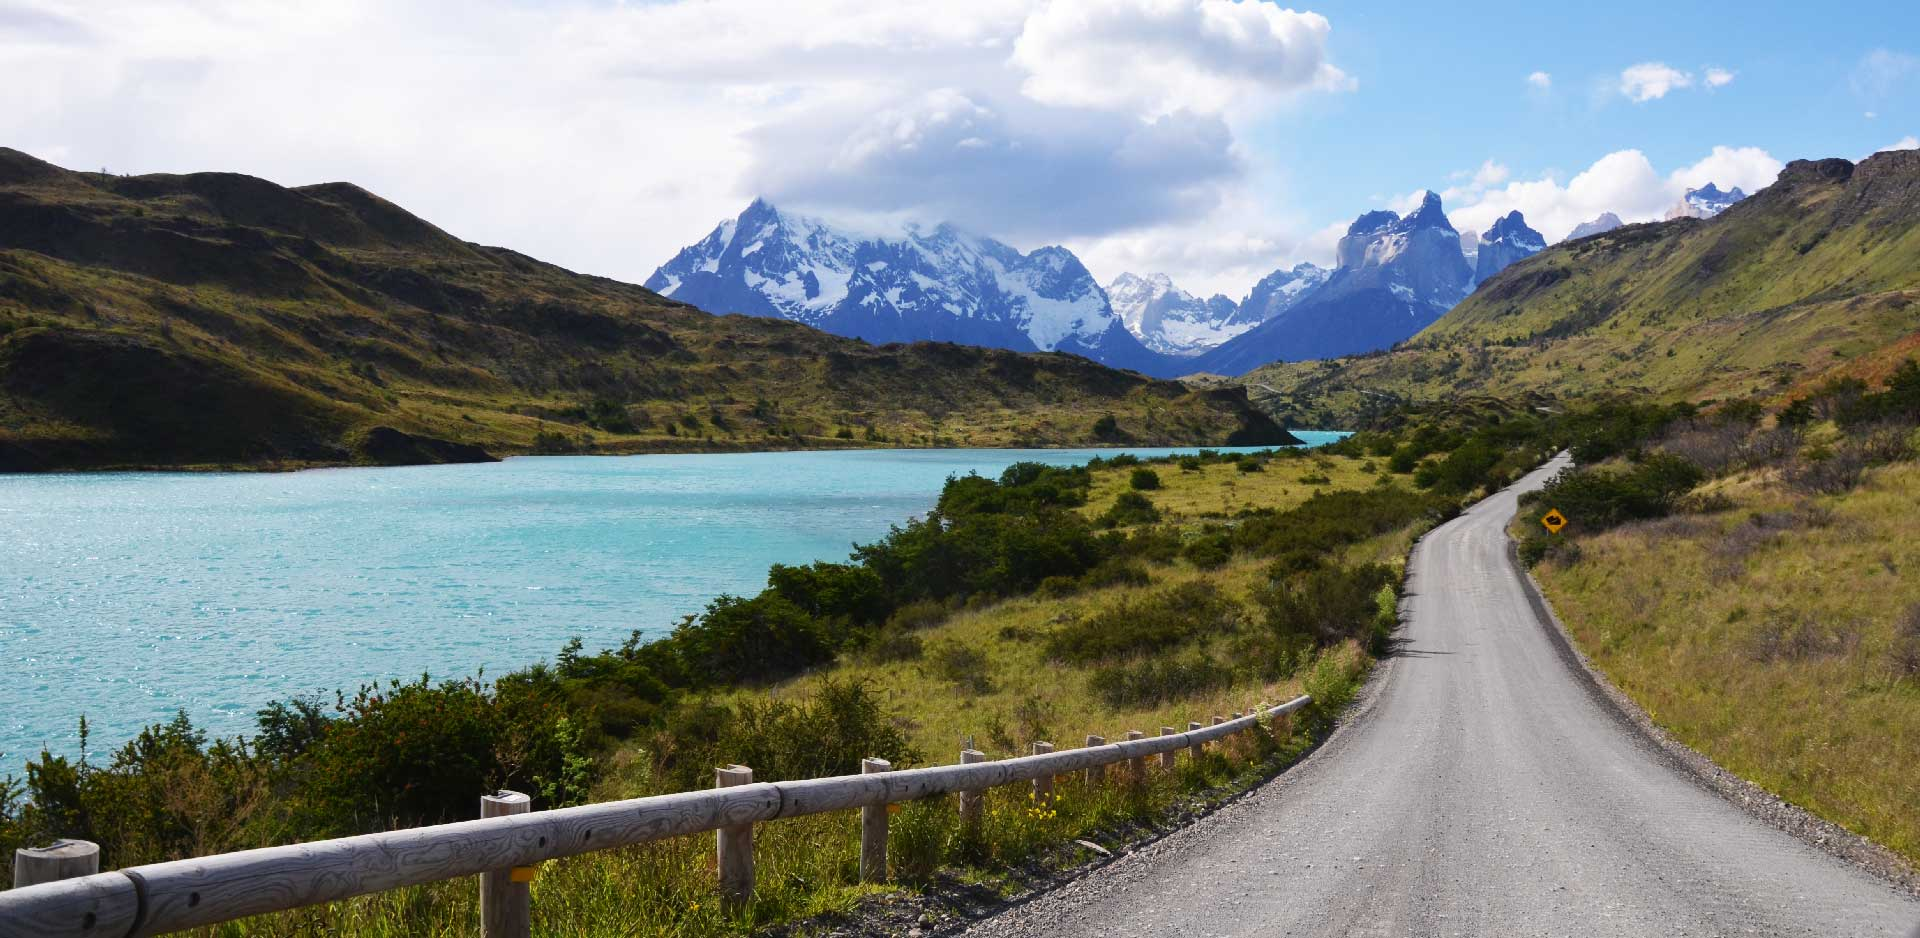 Chile_Patagonia_Torres-del-Paine-c-Gaelle-Montcharmont-26-web